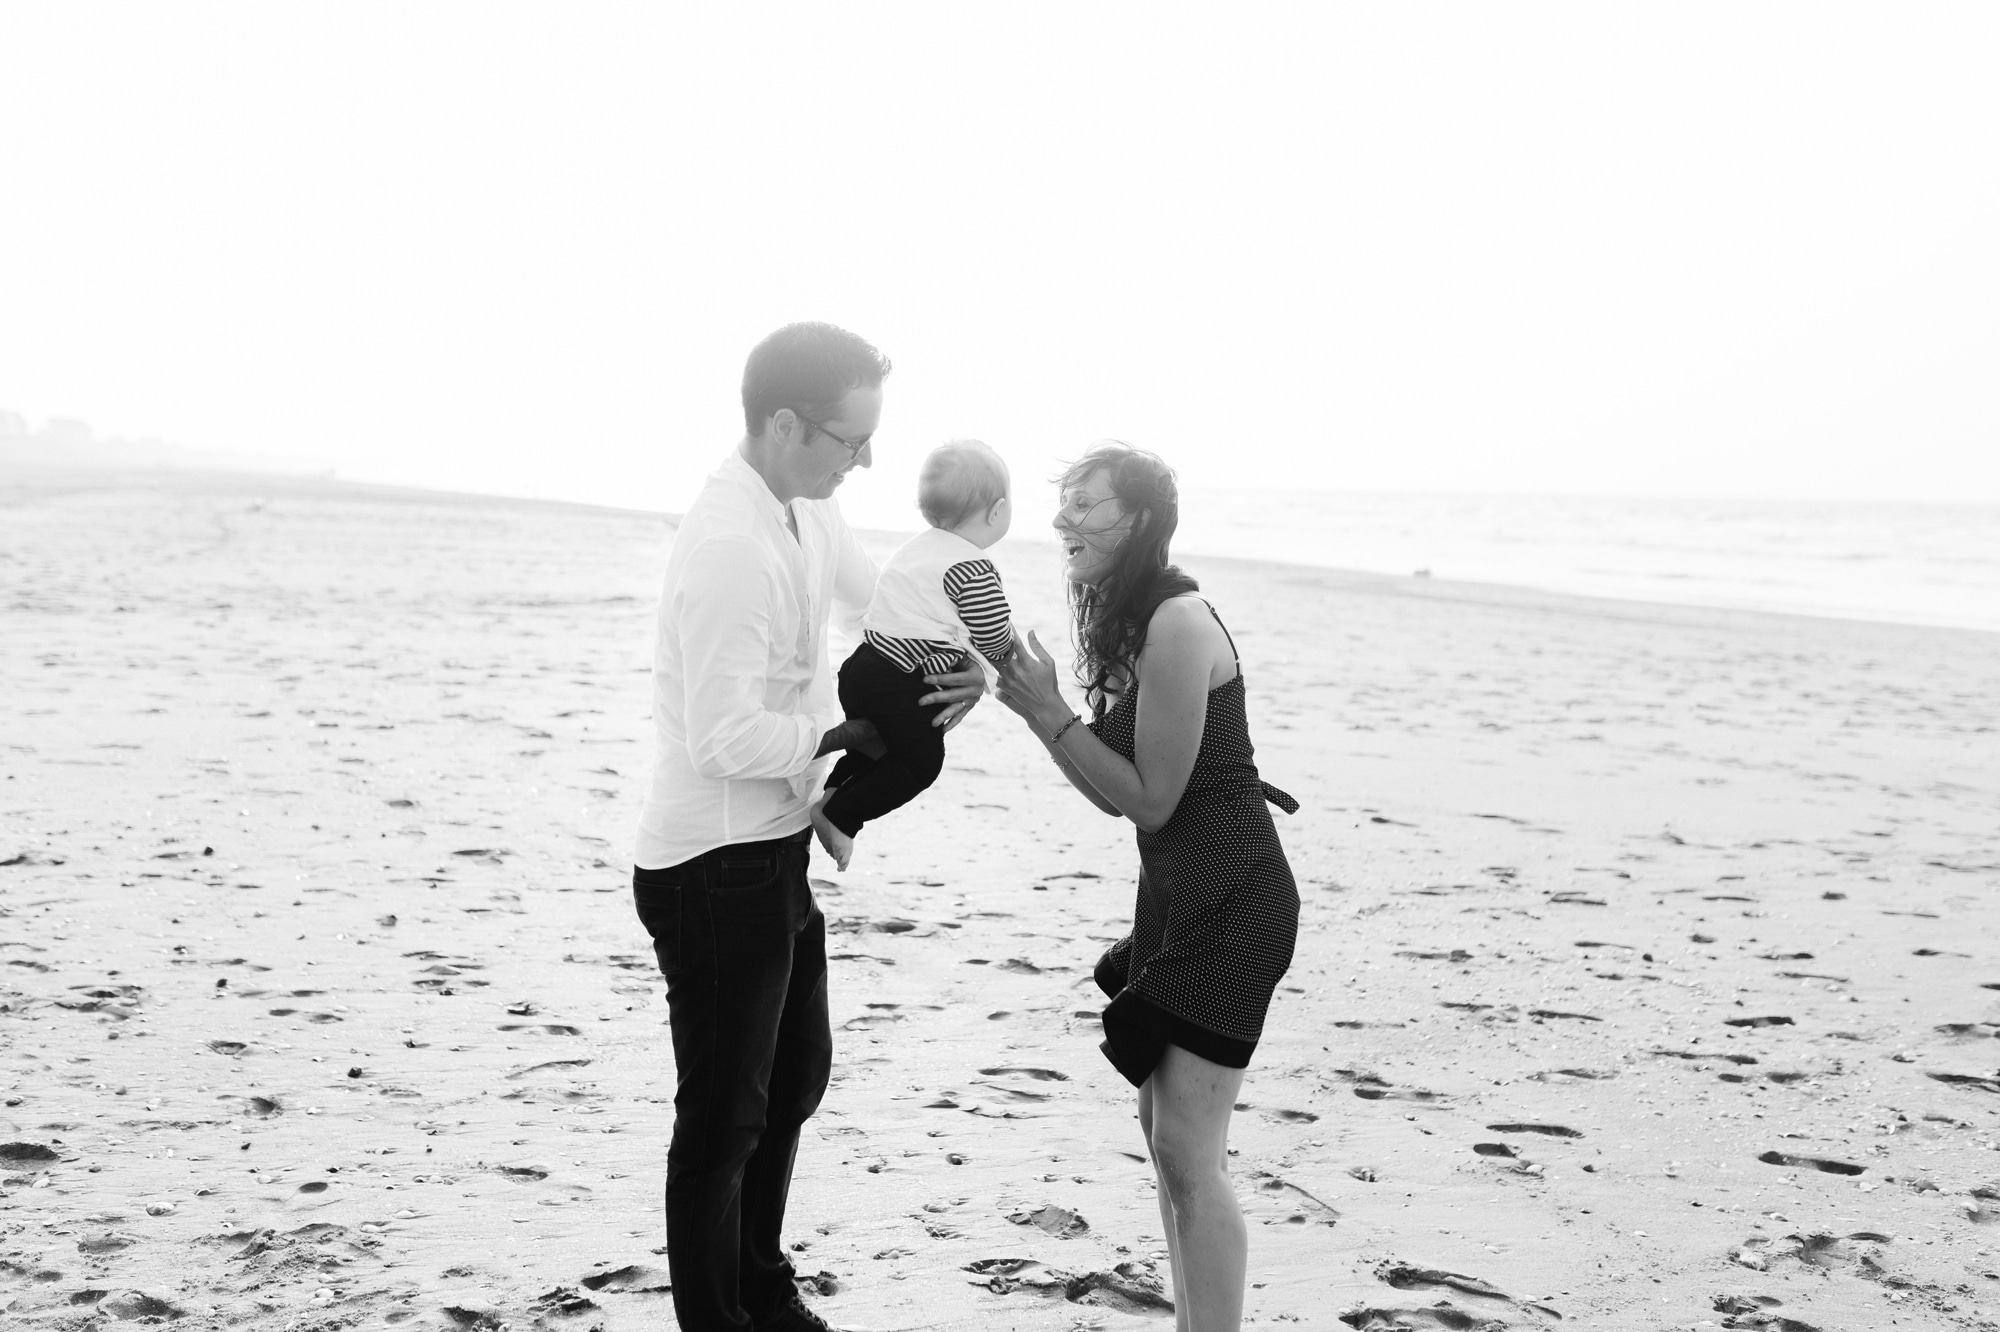 séance famille cabourg basse normandie photographe shooting lifestyle-3